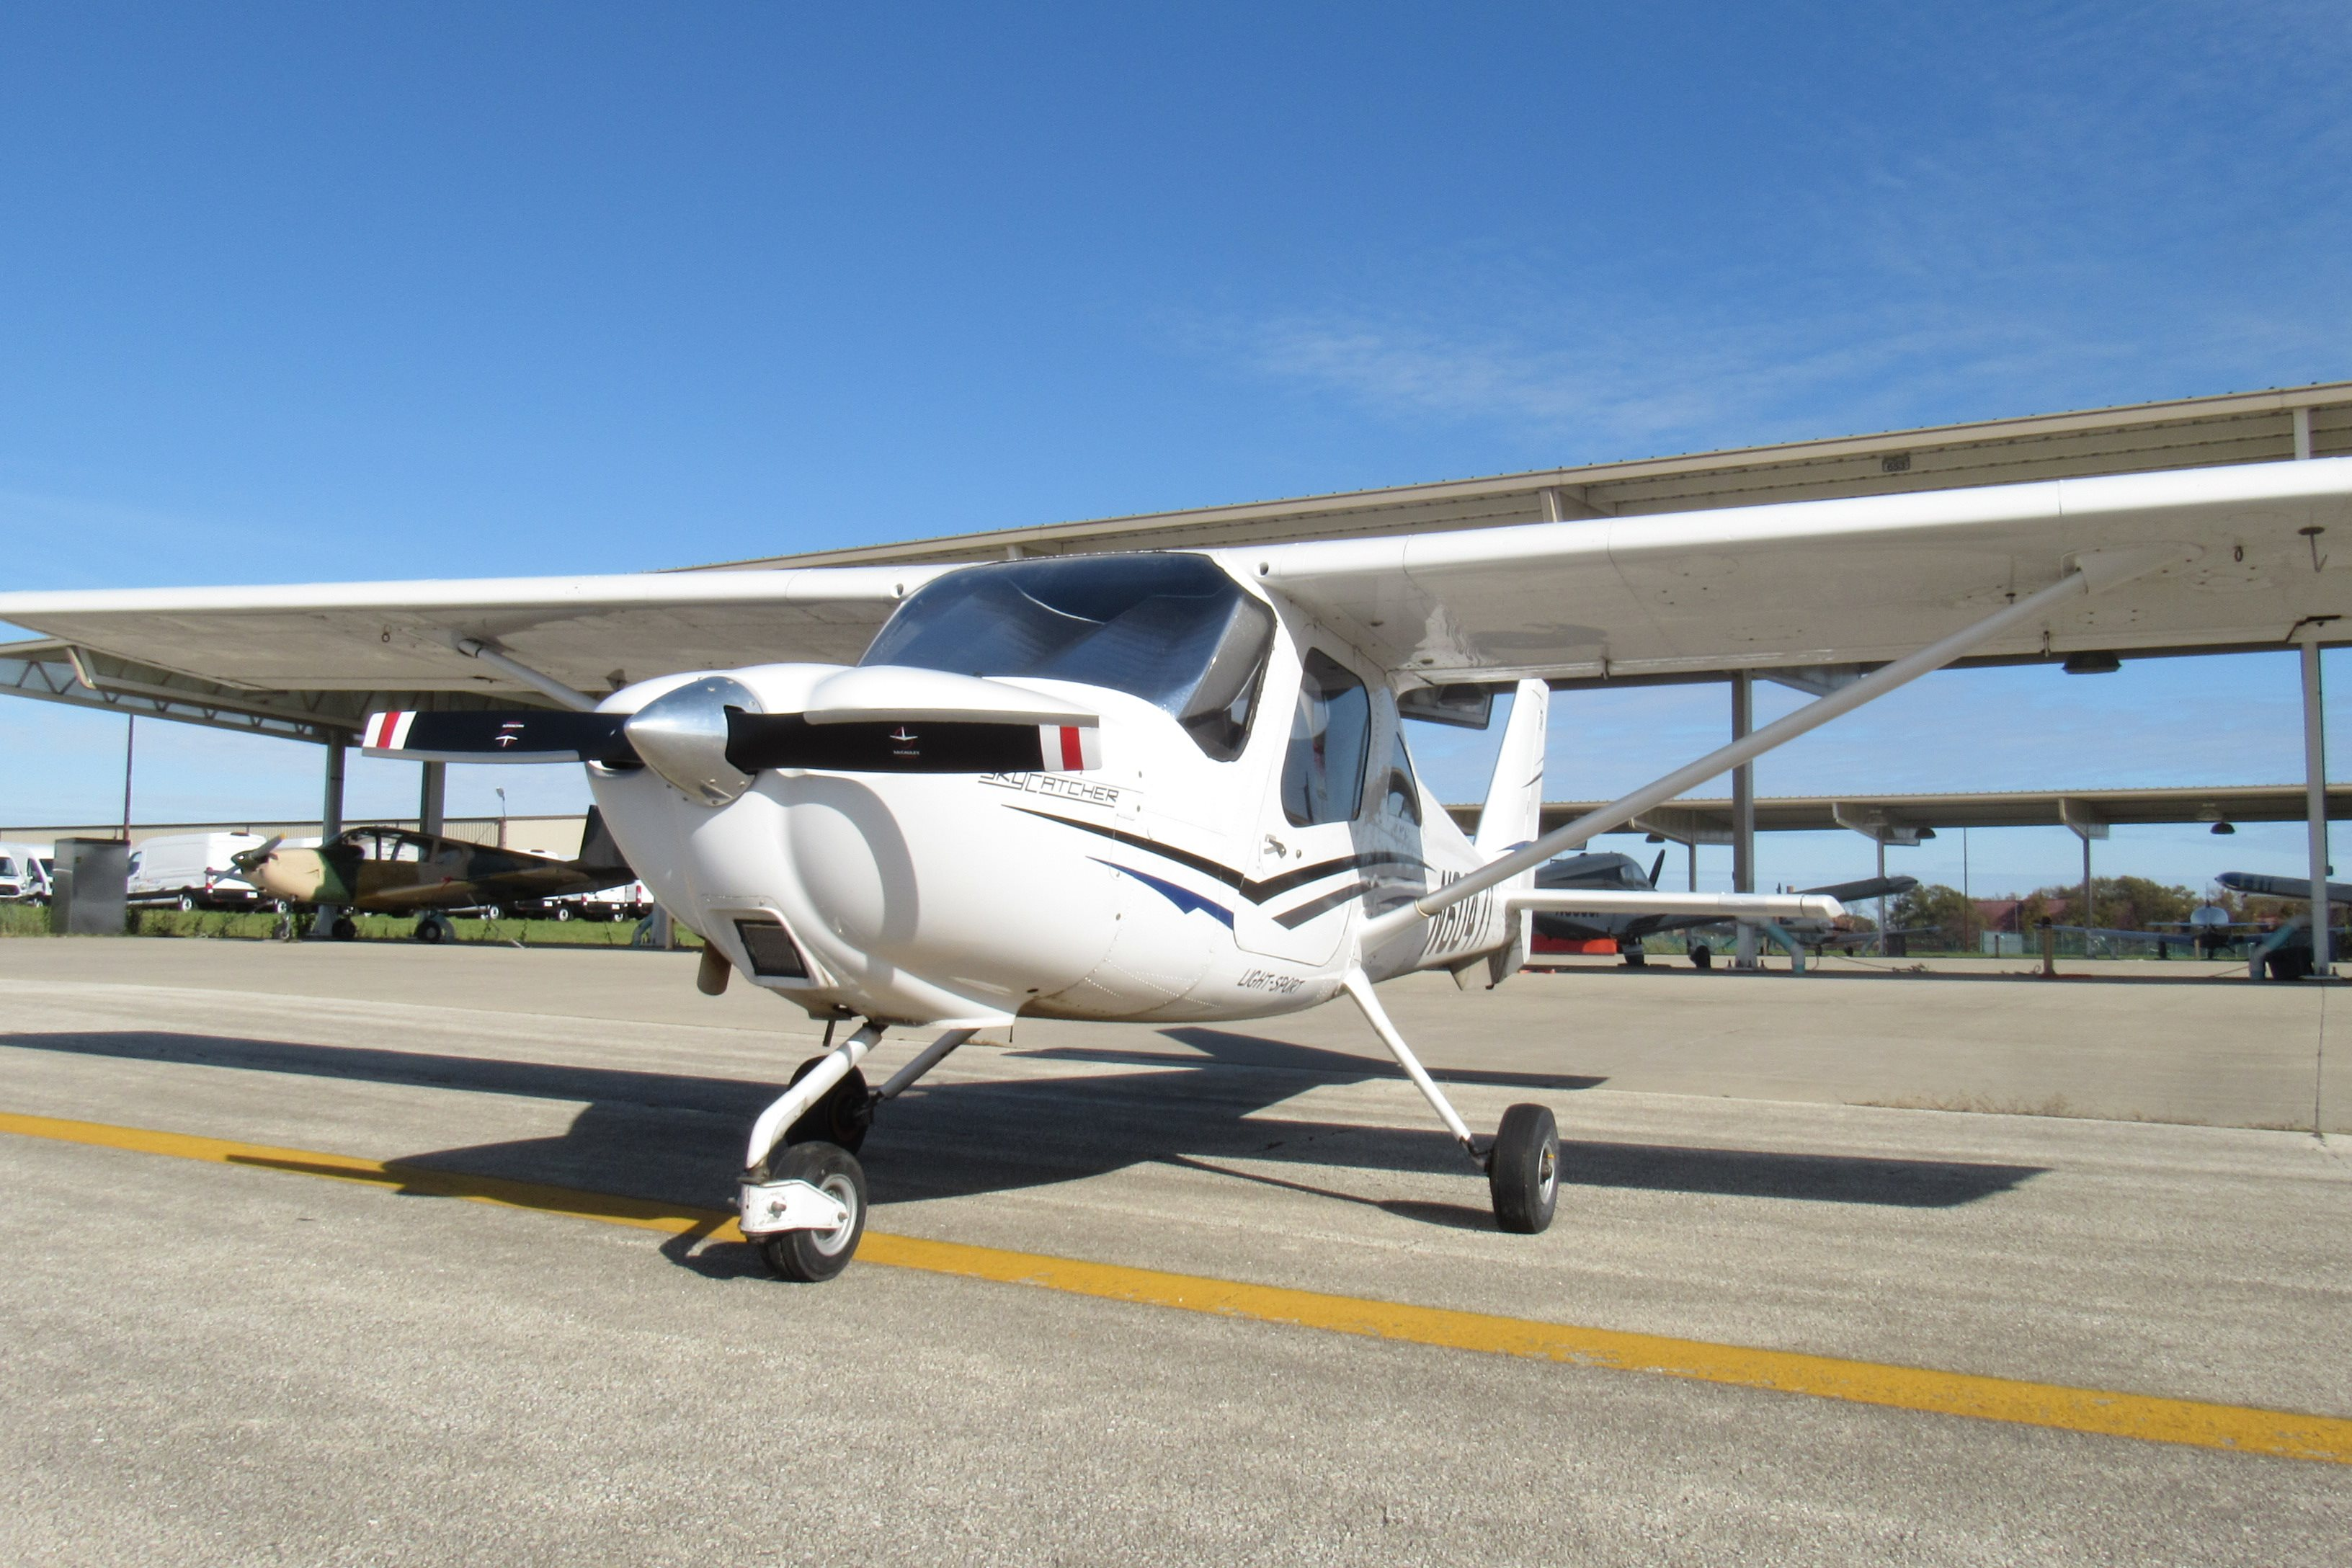 2011 Cessna 162 Skycatcher Aircraft